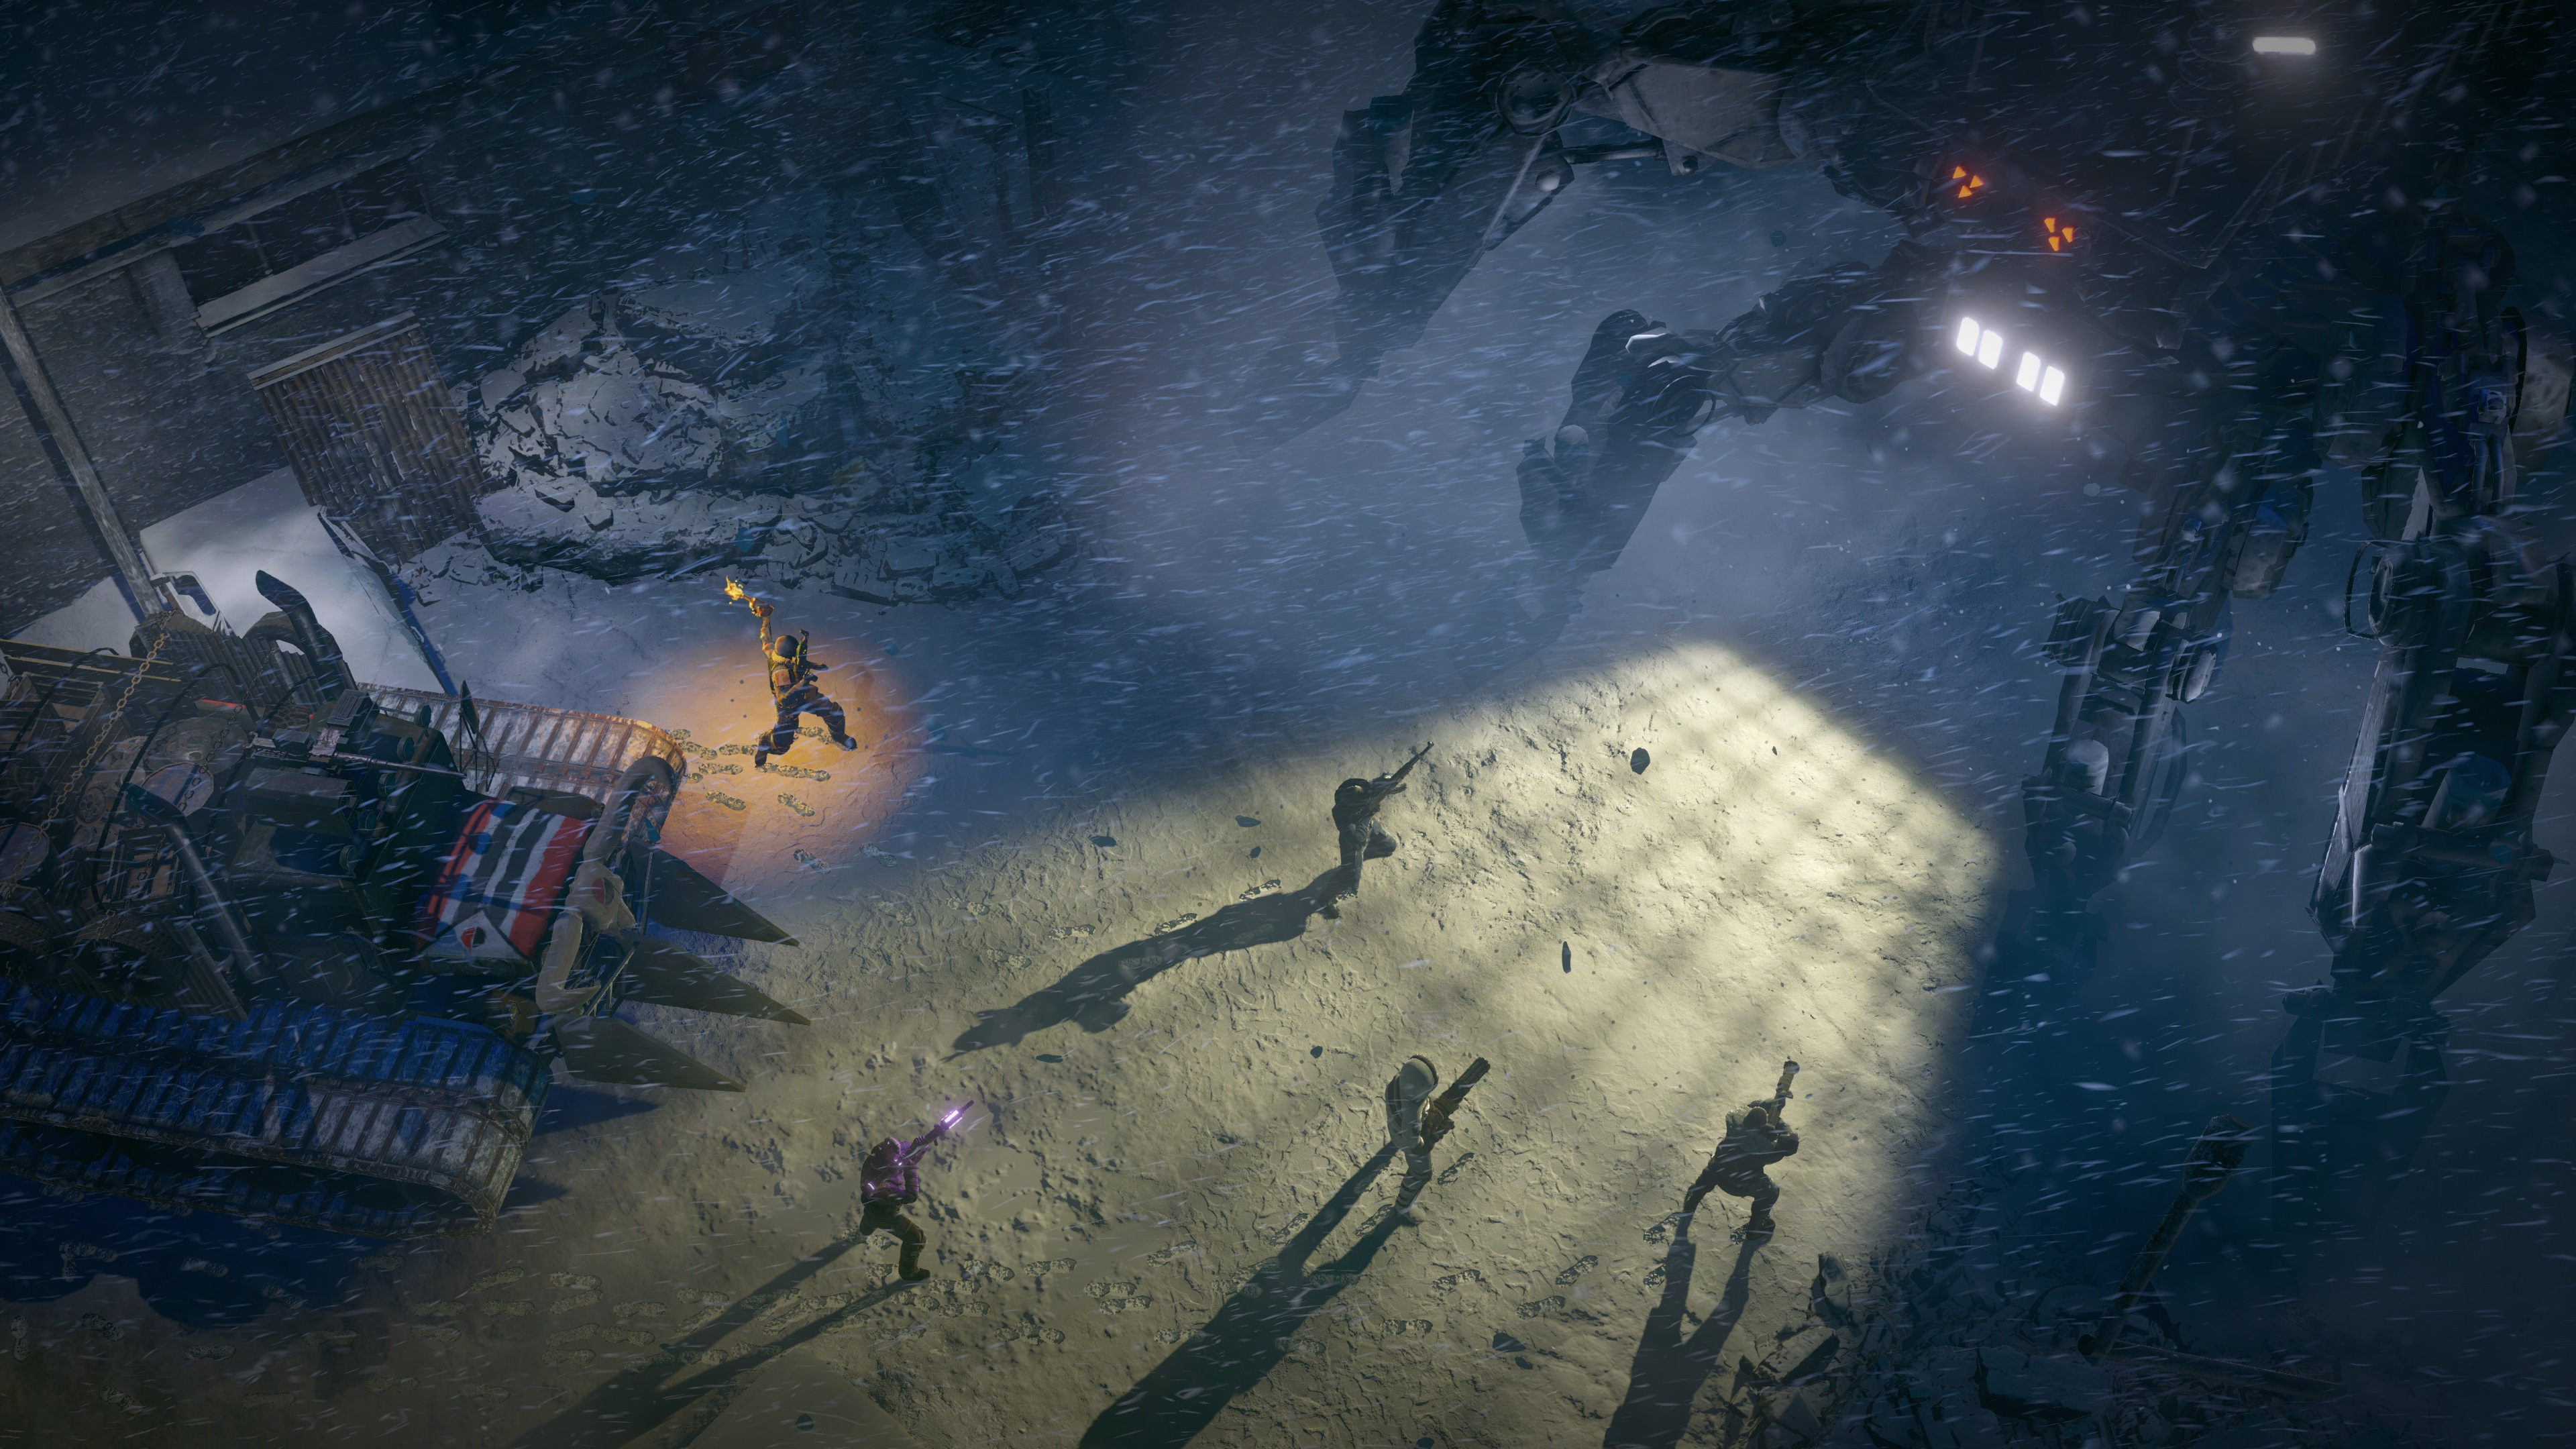 Wasteland 3 is a prettier, more polished post-apocalypse